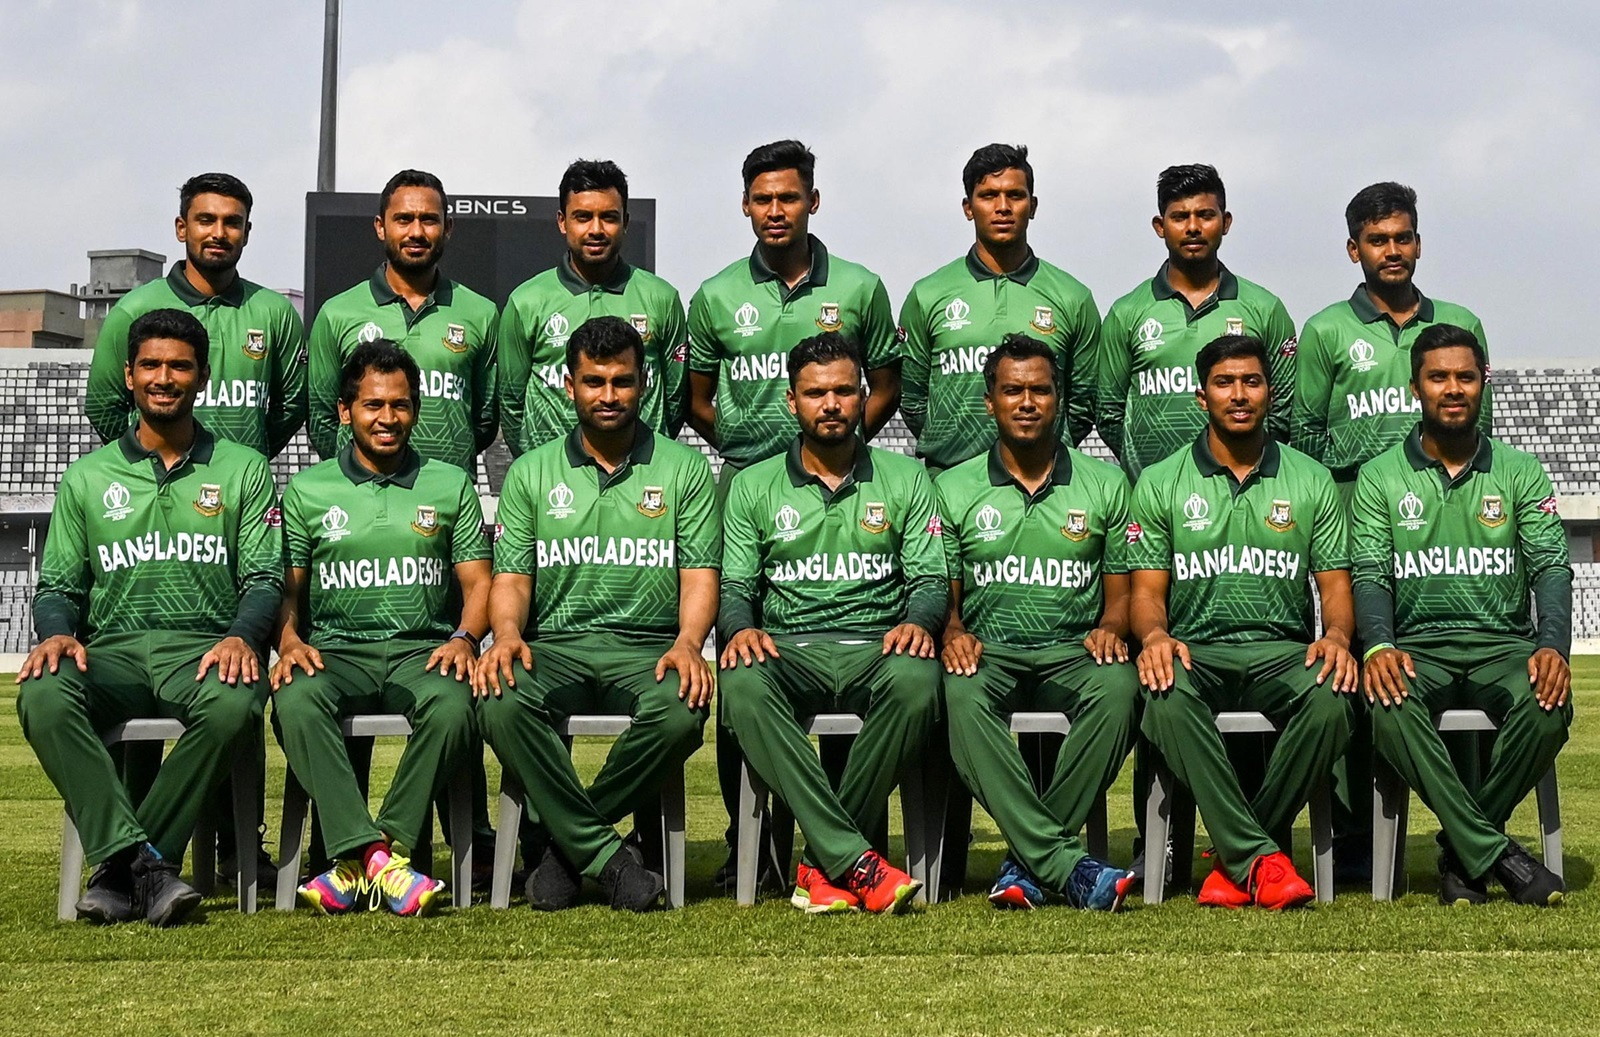 Bangladesh Cricket Team jersey Released